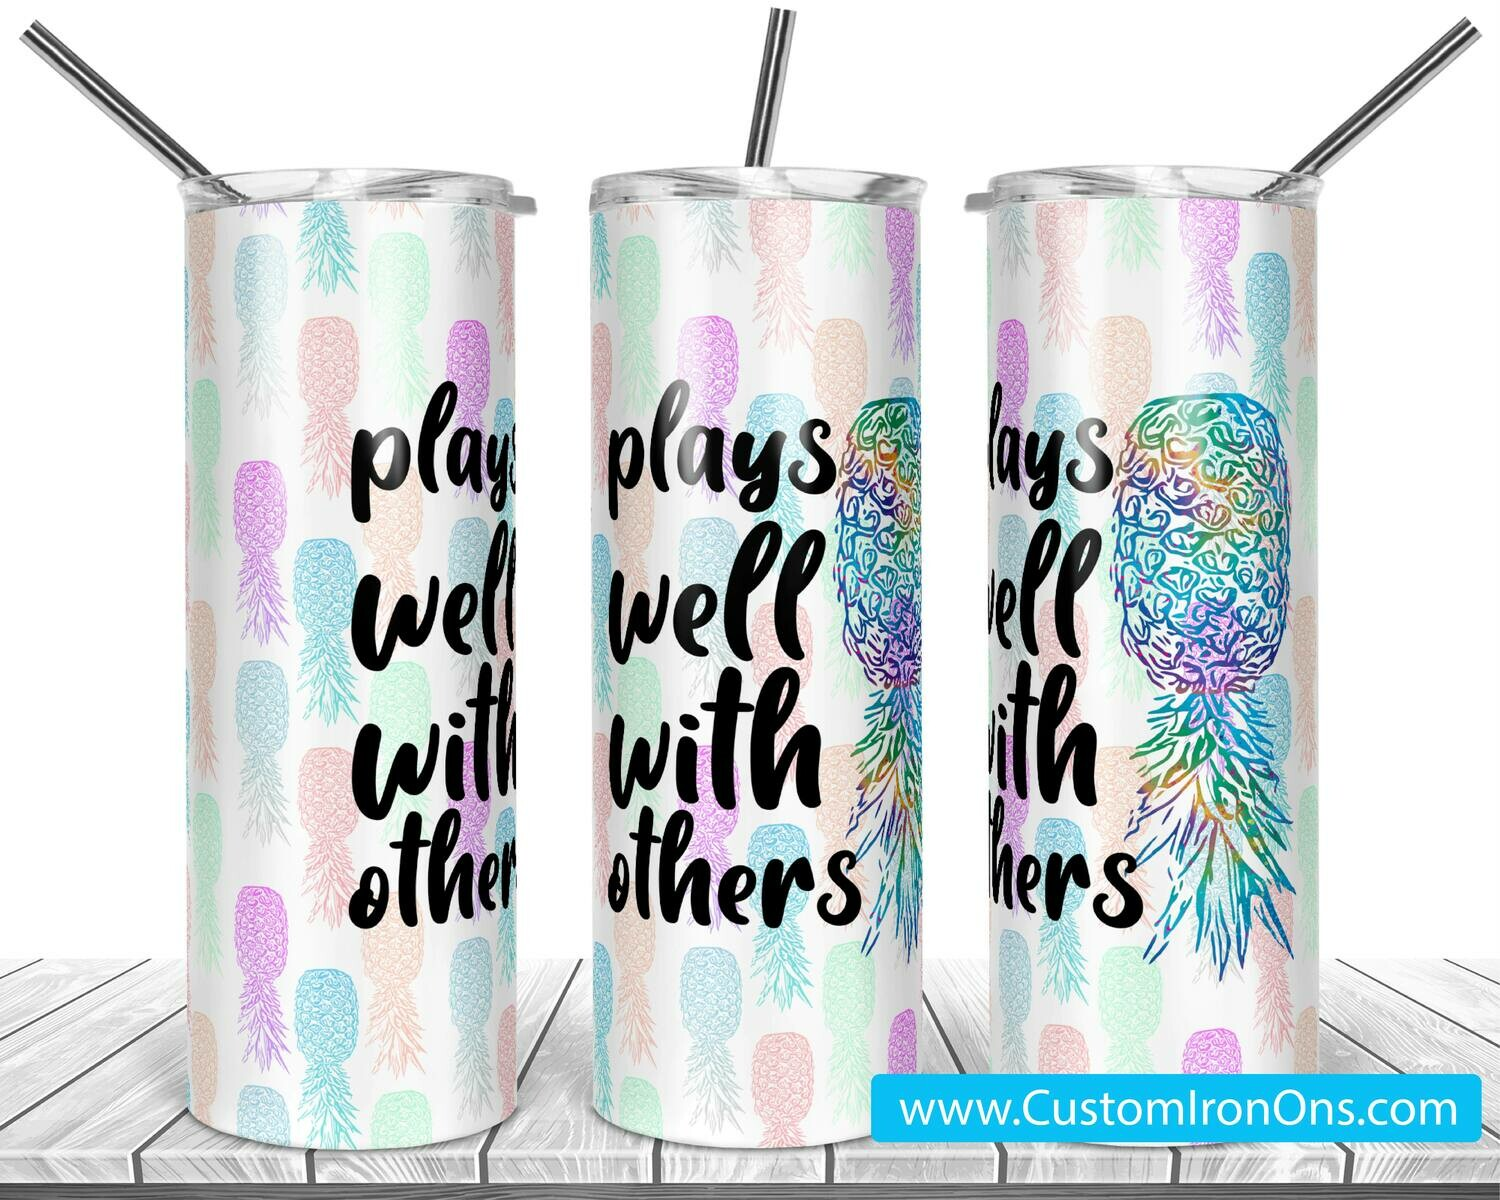 Plays Well With Others -  20oz Skinny TUMBLER PNG Sublimation